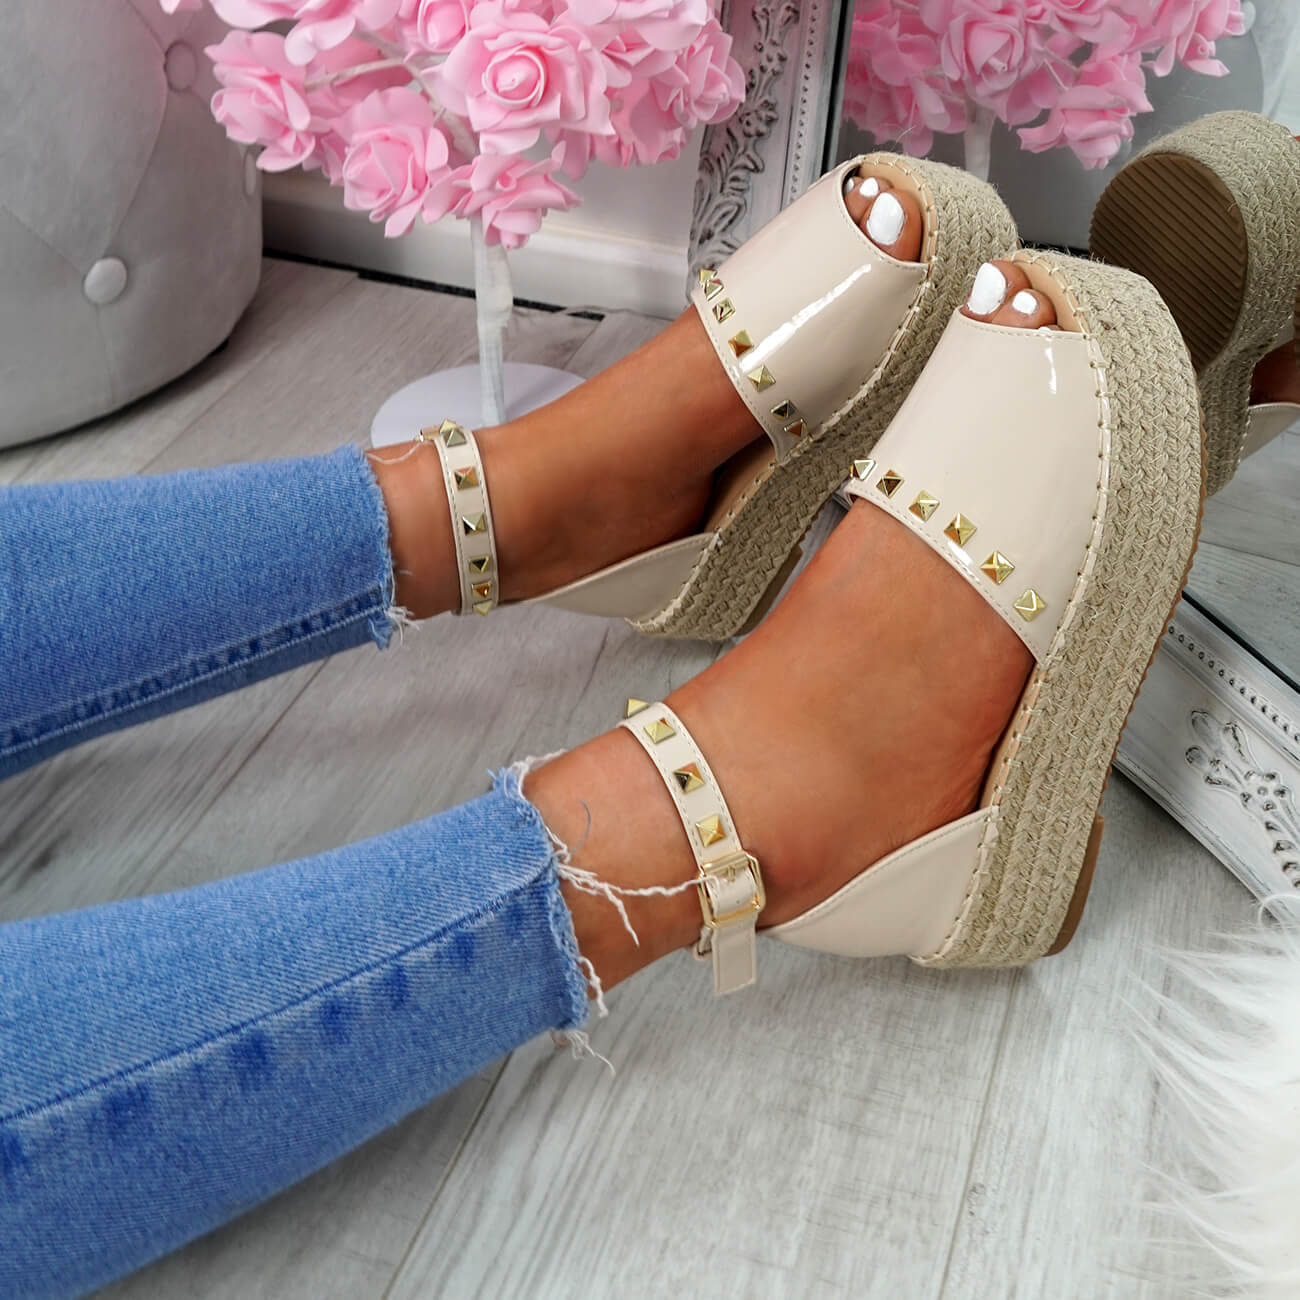 WOMENS-LADIES-ROCK-STUDS-ESPADRILLE-FLATFORM-PLATFORM-SANDALS-CASUAL-SHOES-SIZE thumbnail 19